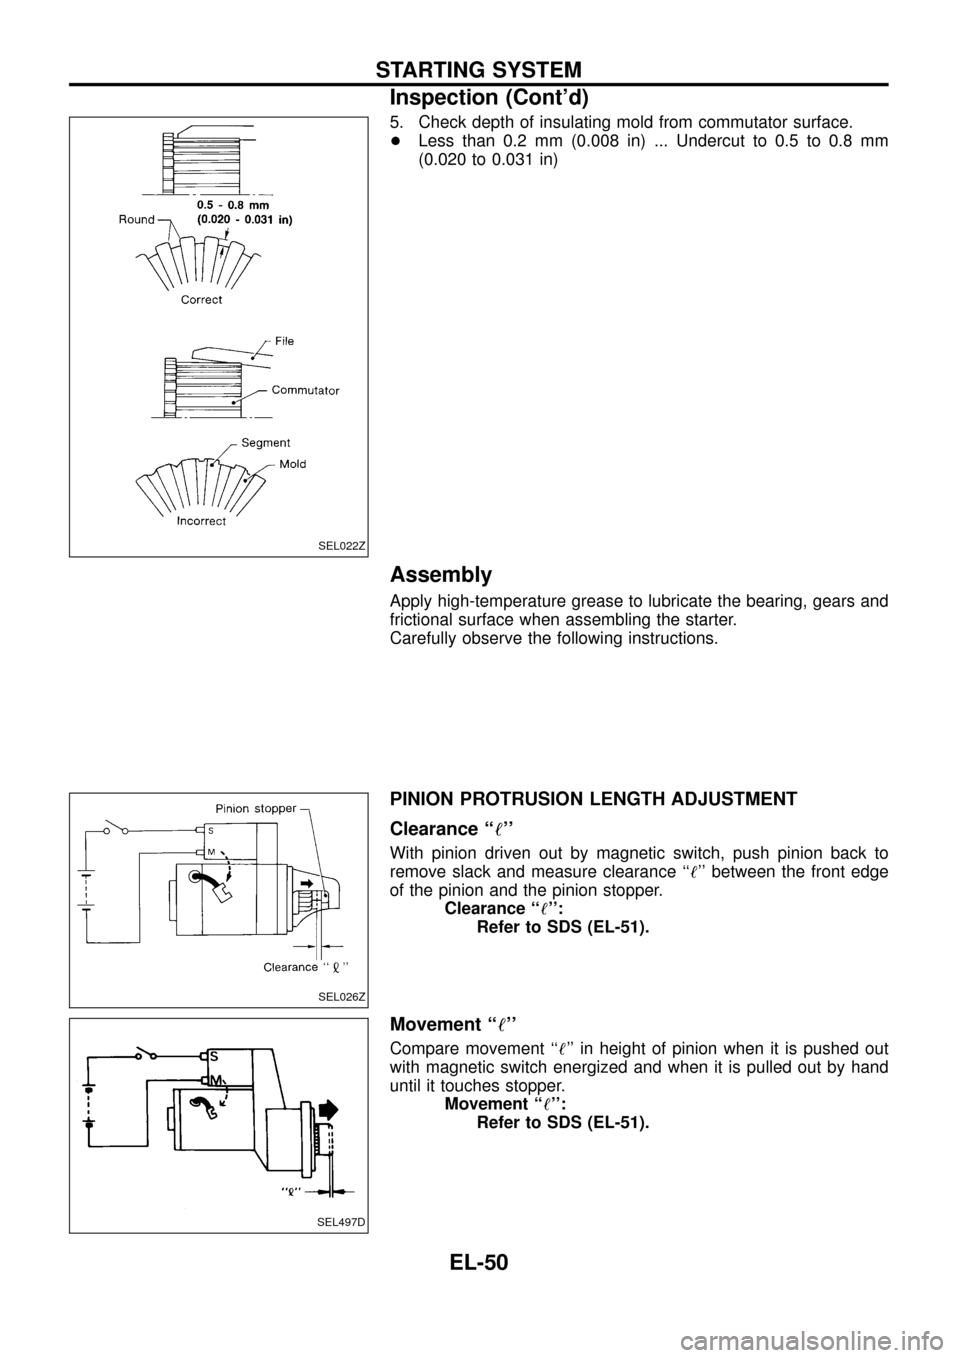 NISSAN PATROL 1998 Y61 / 5.G Electrical System Workshop Manual 5. Check depth of insulating mold from commutator surface. +Less than 0.2 mm (0.008 in) ... Undercut to 0.5 to 0.8 mm (0.020 to 0.031 in) Assembly Apply high-temperature grease to lubricate the bearin